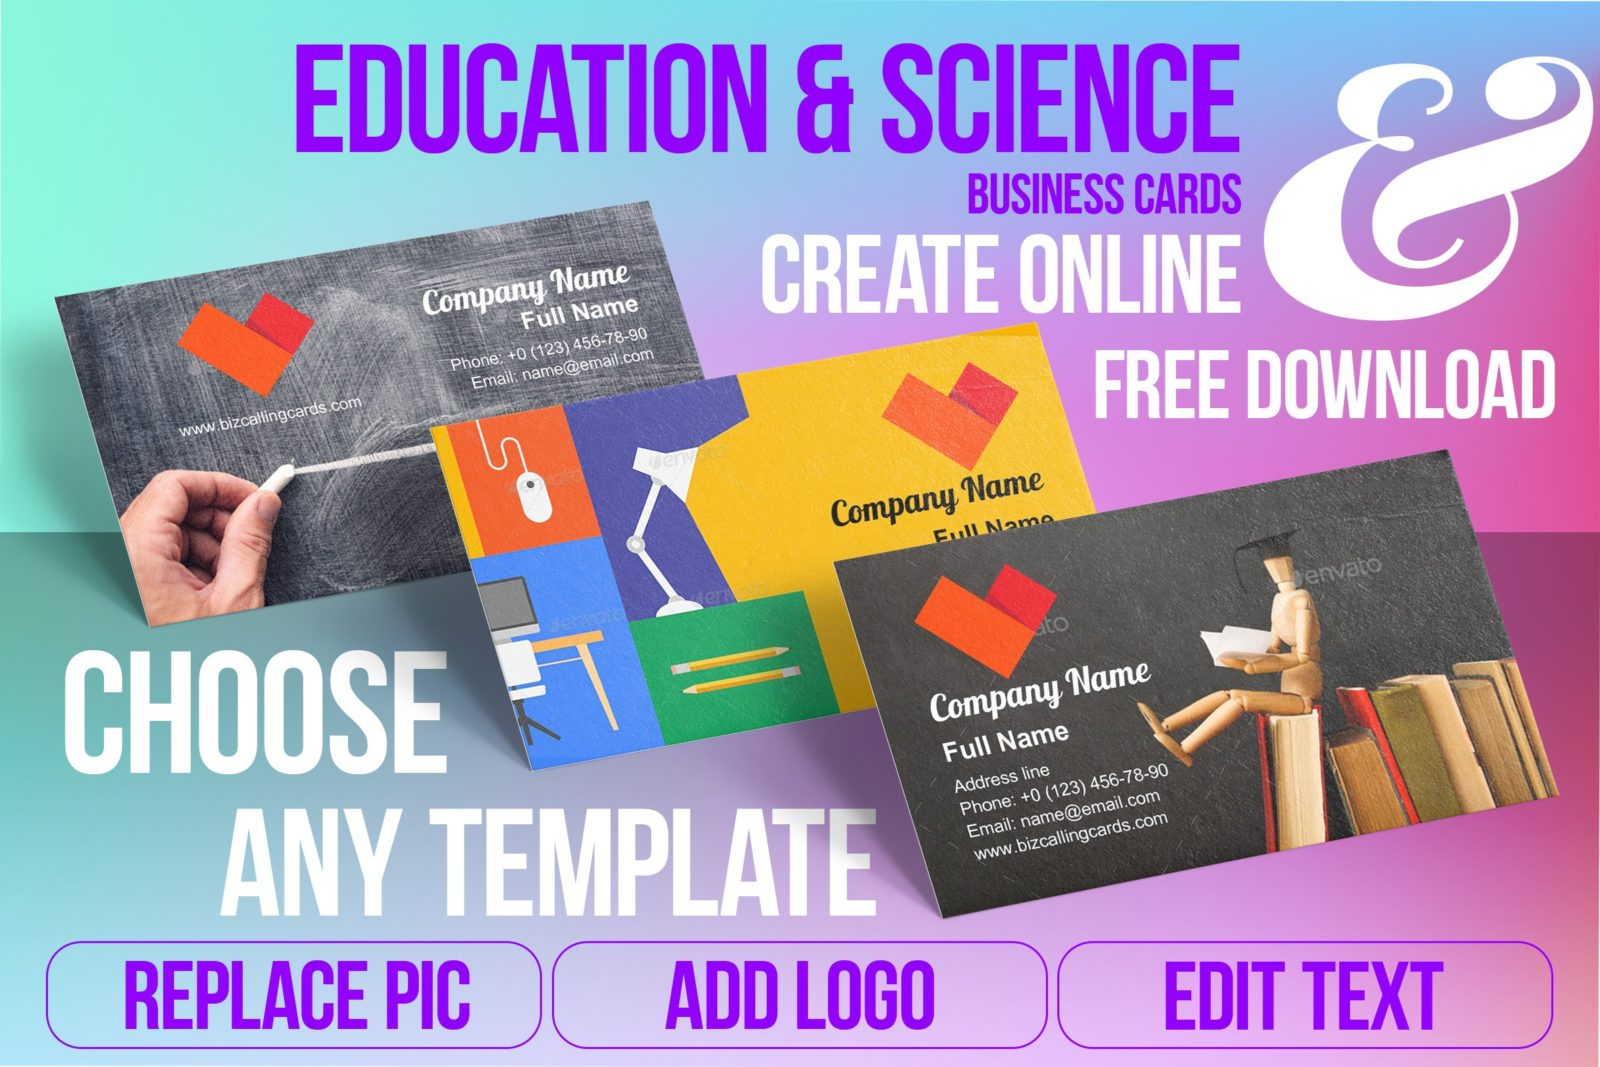 Business Card Templates For Education & Science Free Download